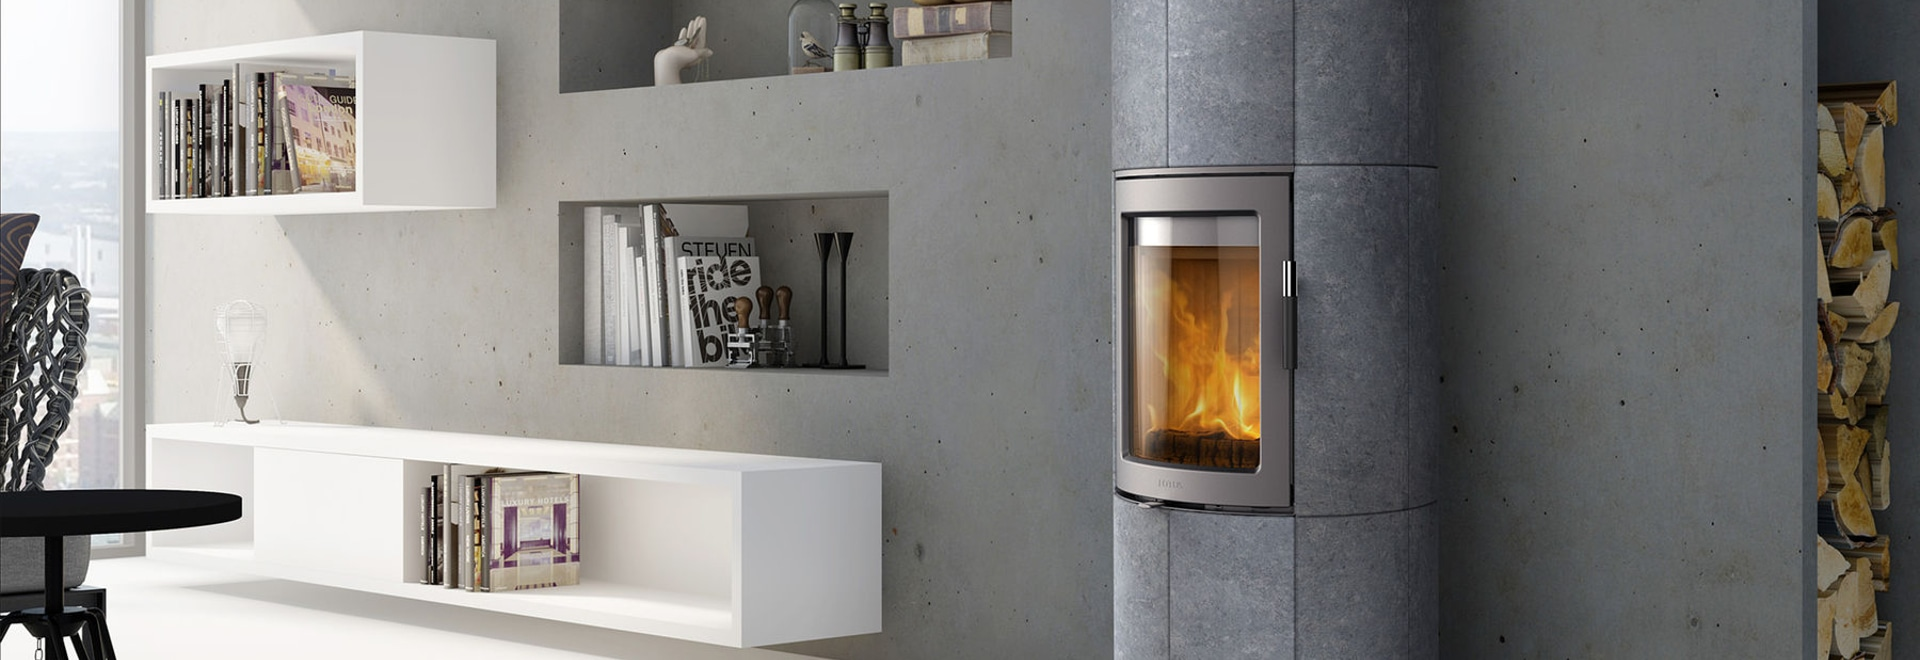 Steinverkleidung Kamin Neu Holz Kaminofen By Lotus Heating Systems A S Lotus Heating